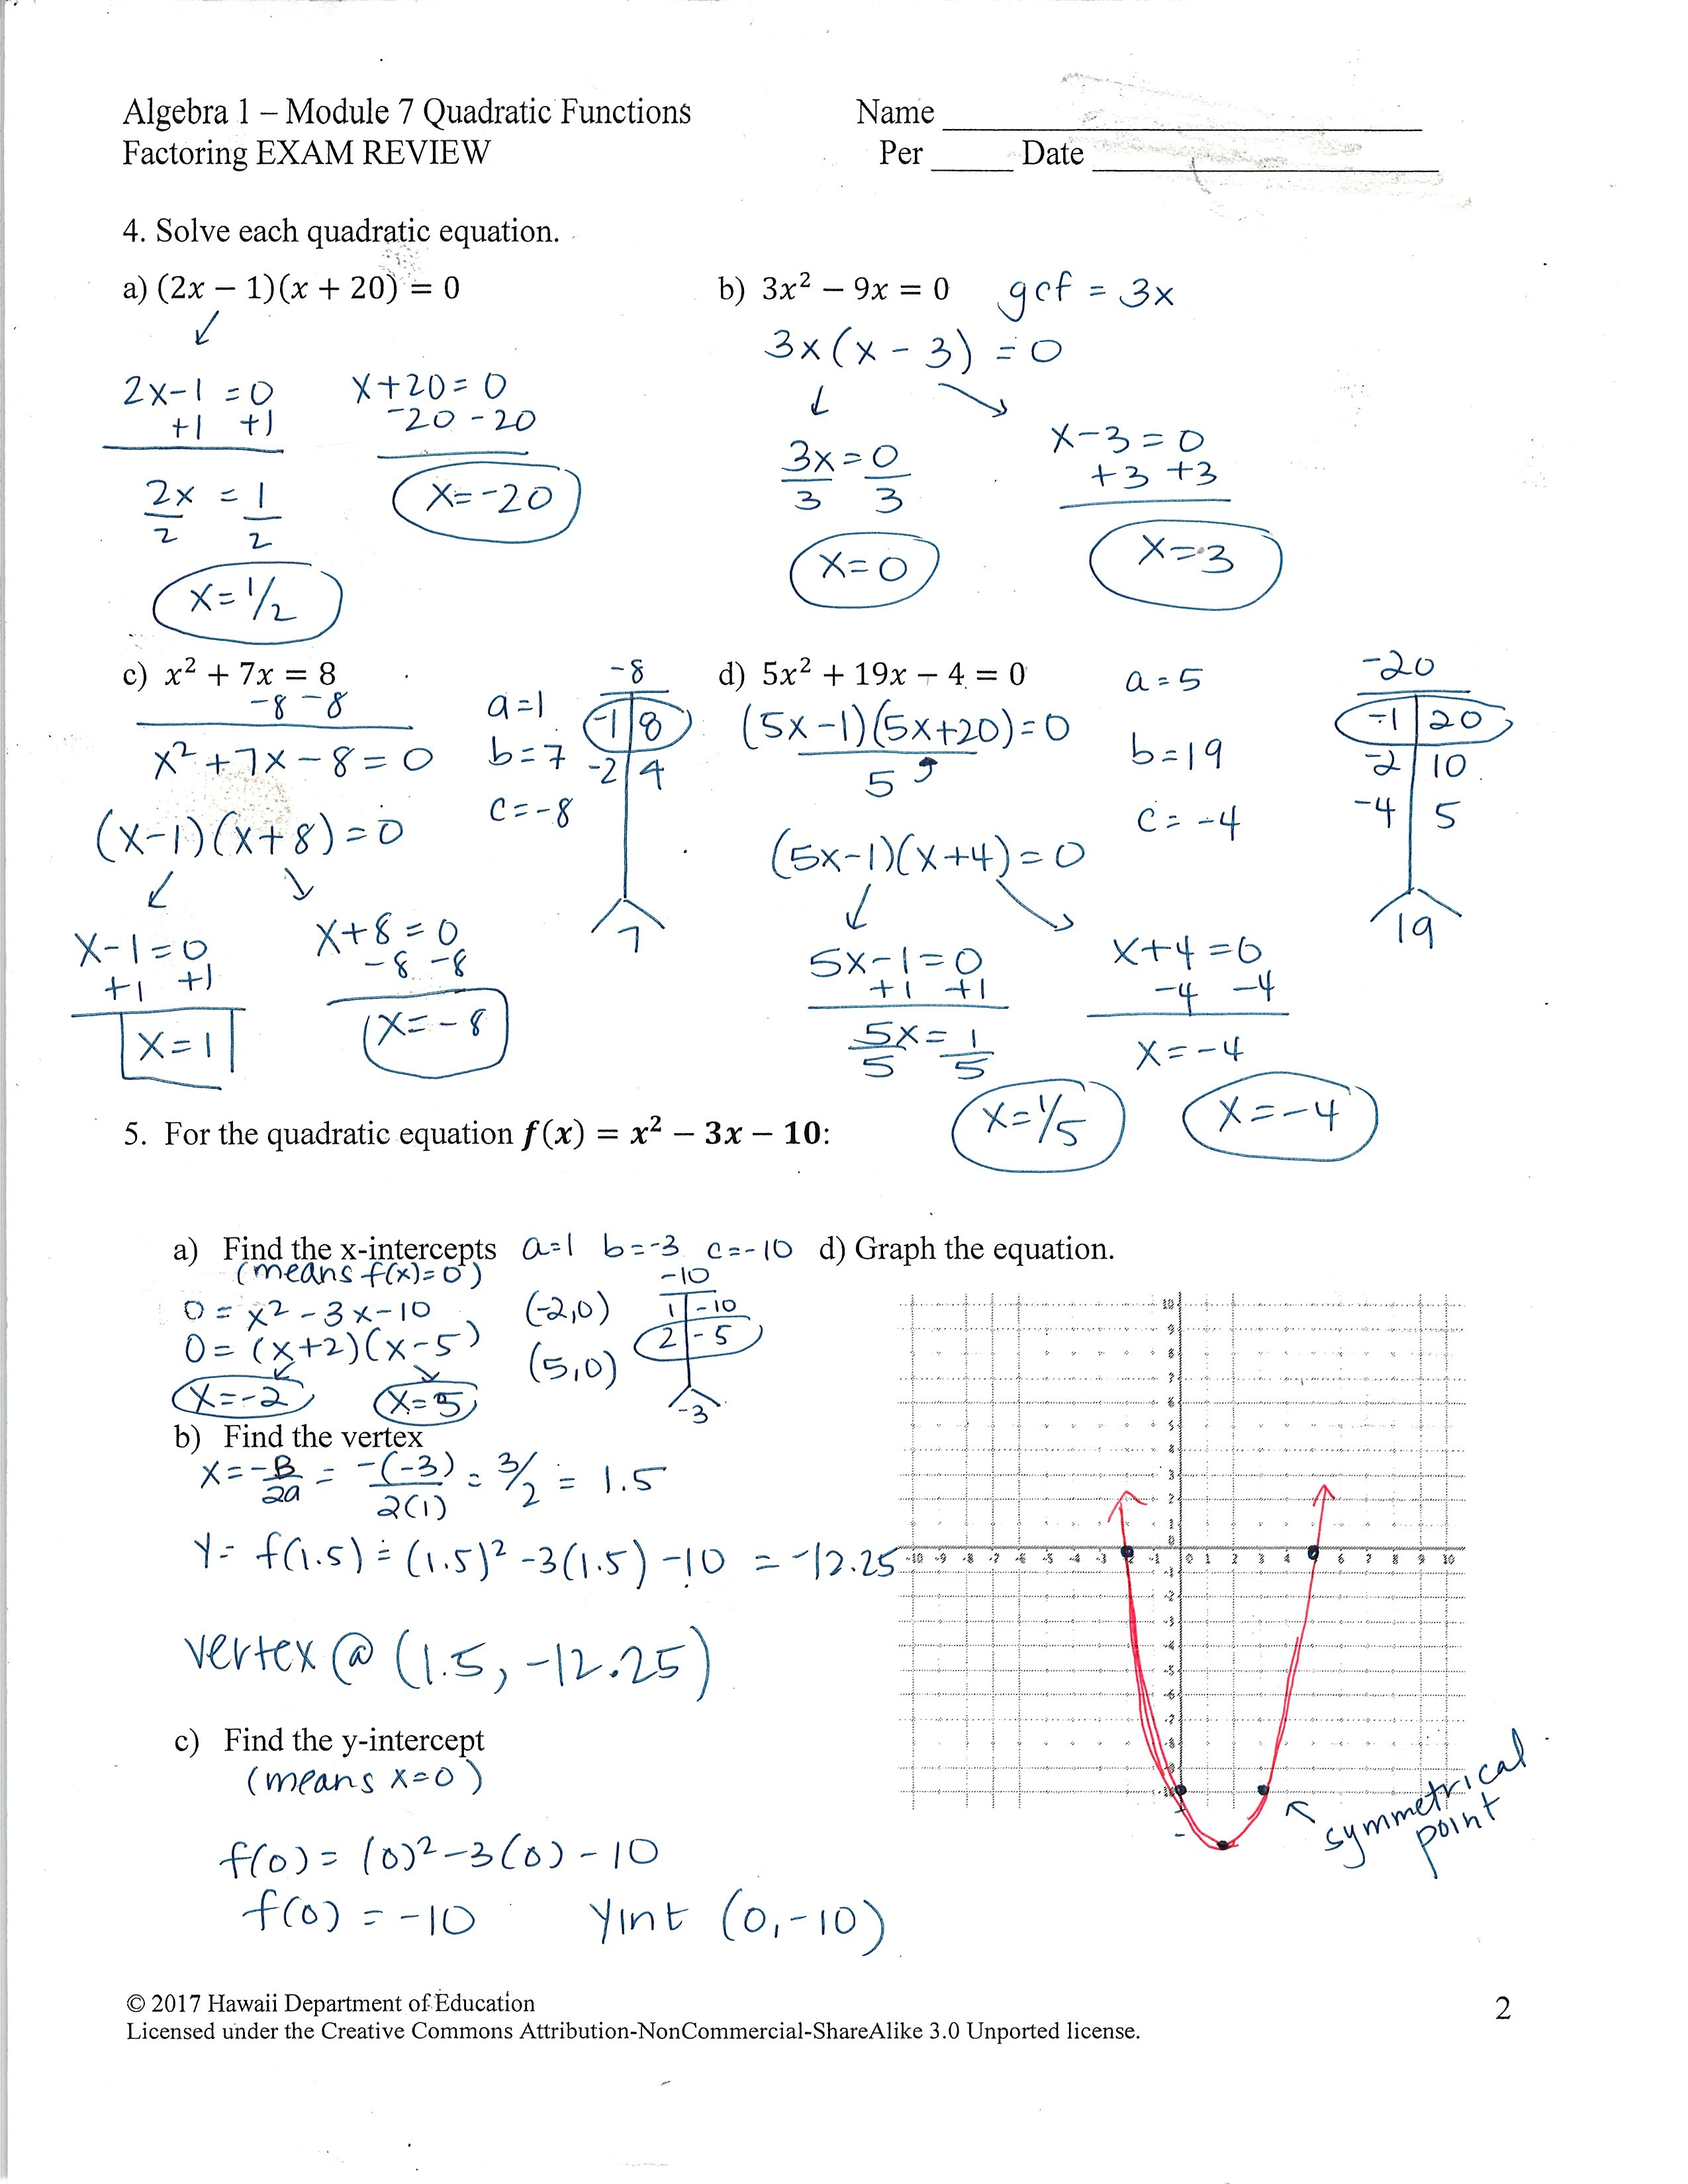 Solving Quadratic Equations By Factoring Notes